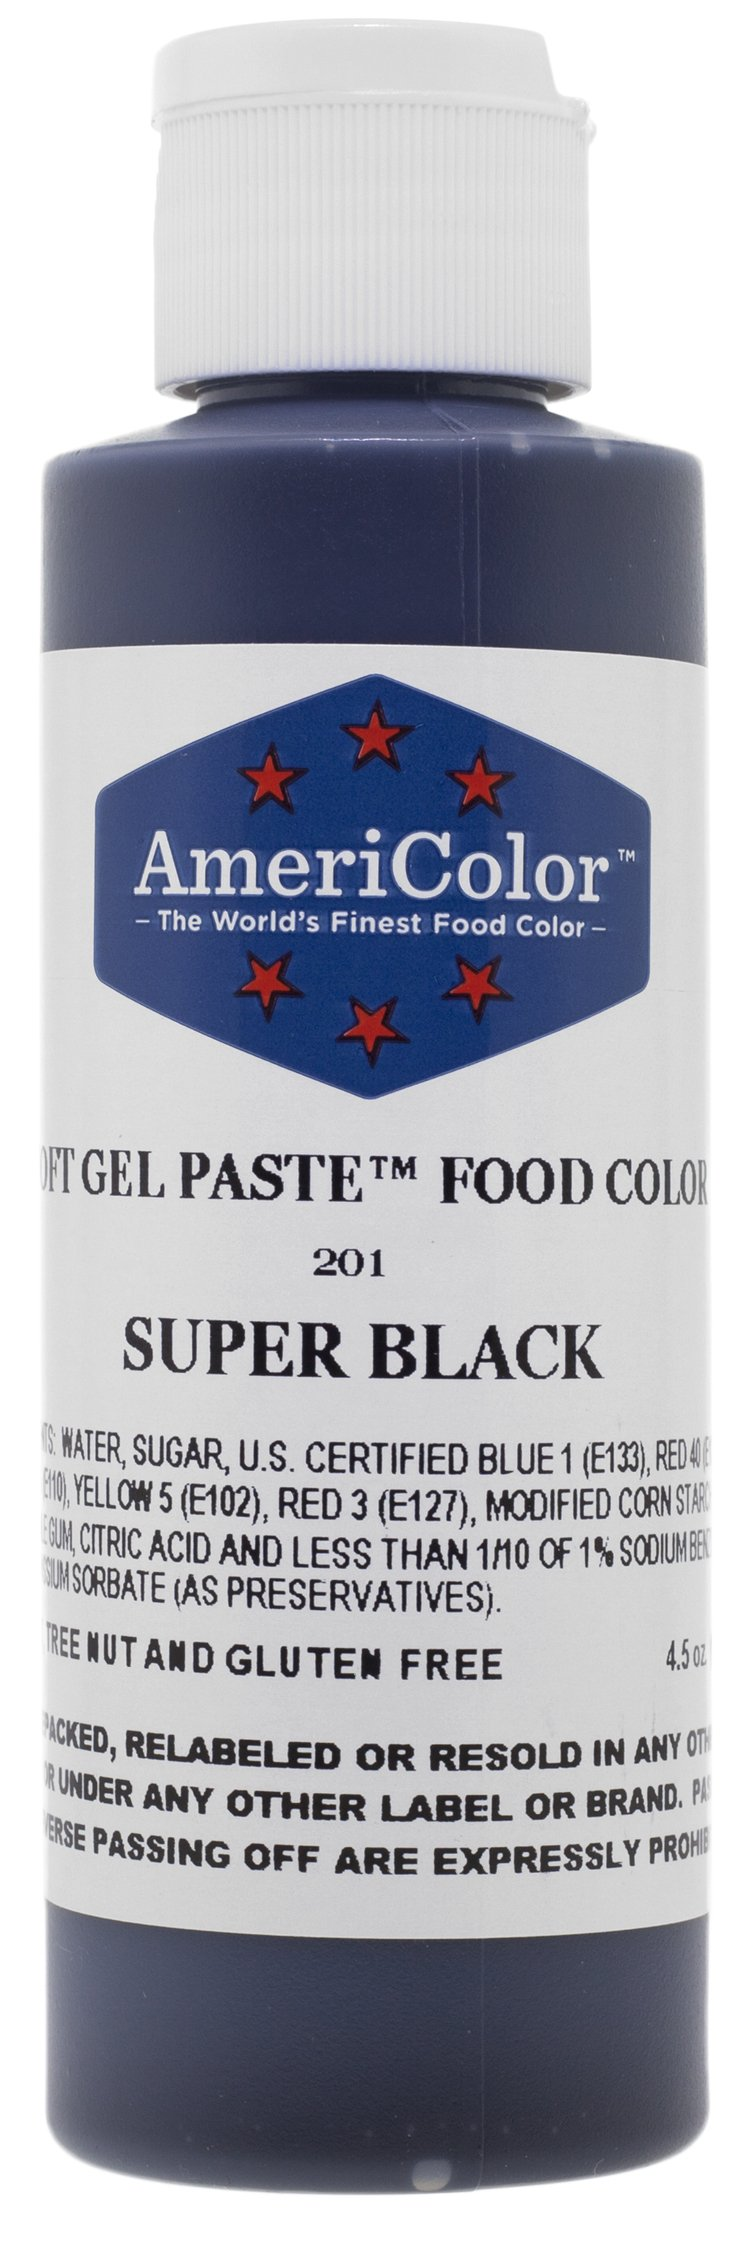 Food Coloring AmeriColor - Bright White Soft Gel Paste, 20 ...